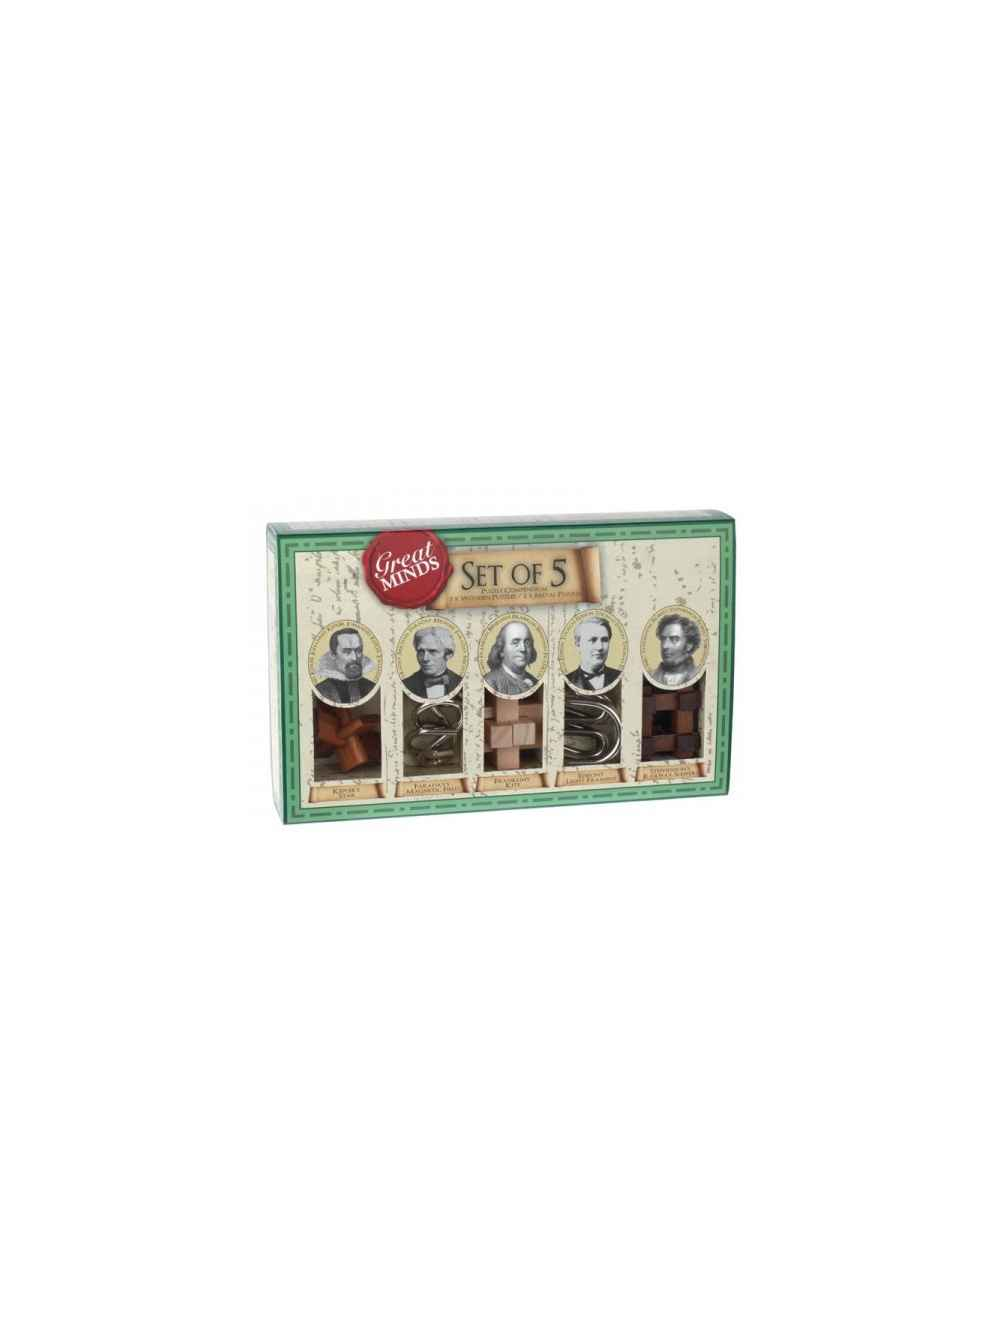 WOODEN AND METAL PUZZLES SET  5 IN 1 - GREAT MINDS